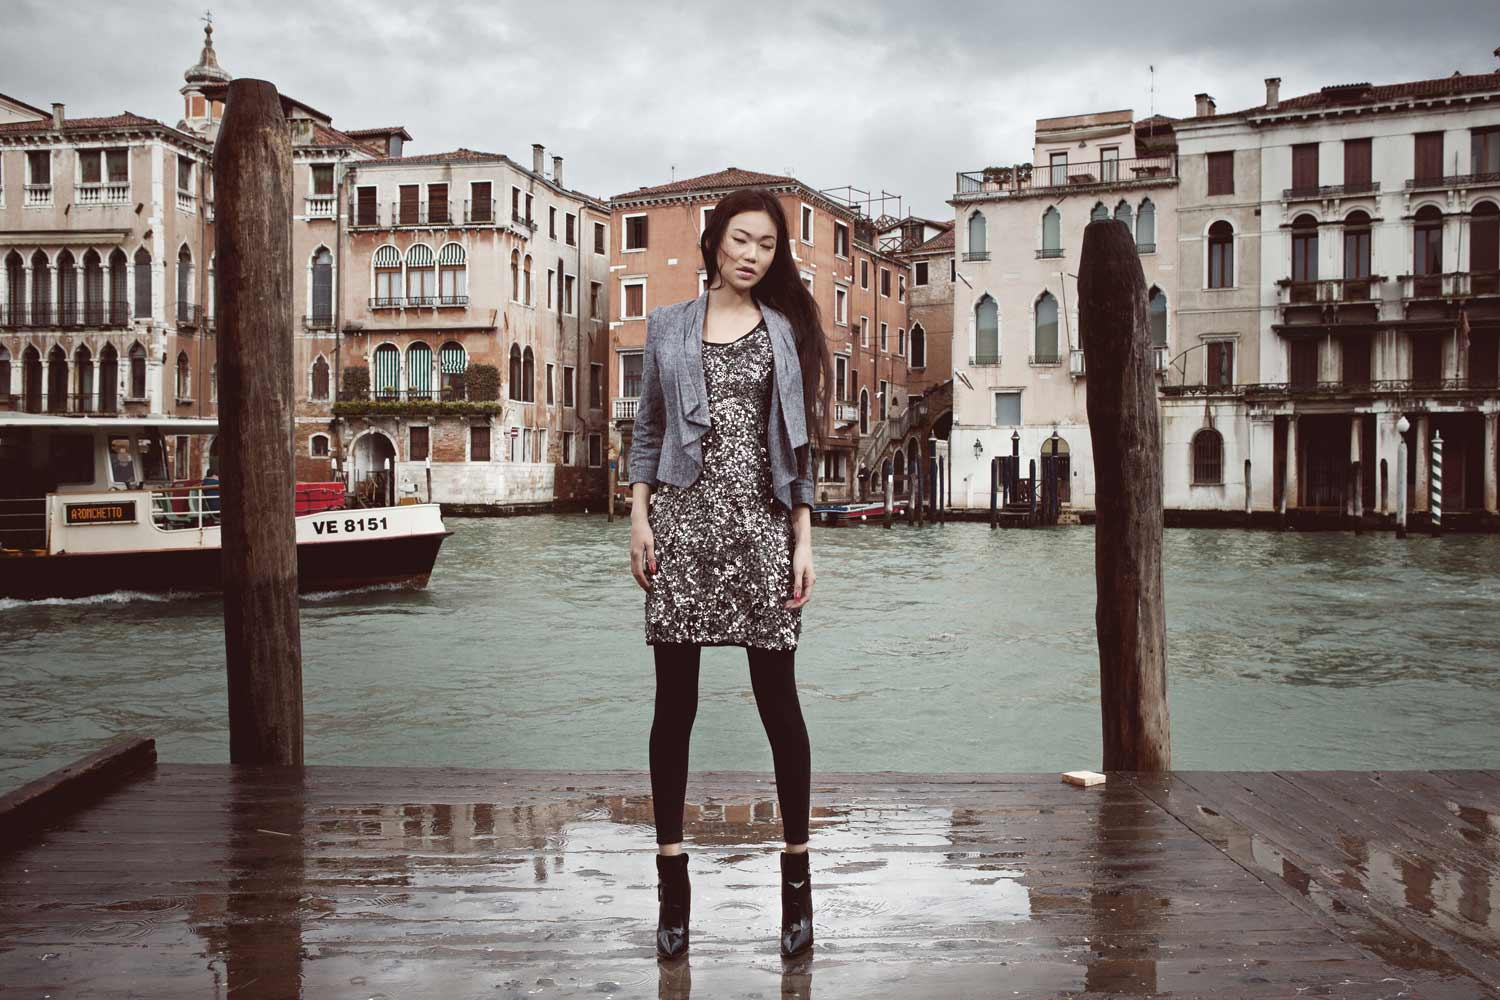 Fashion pictures in Venice